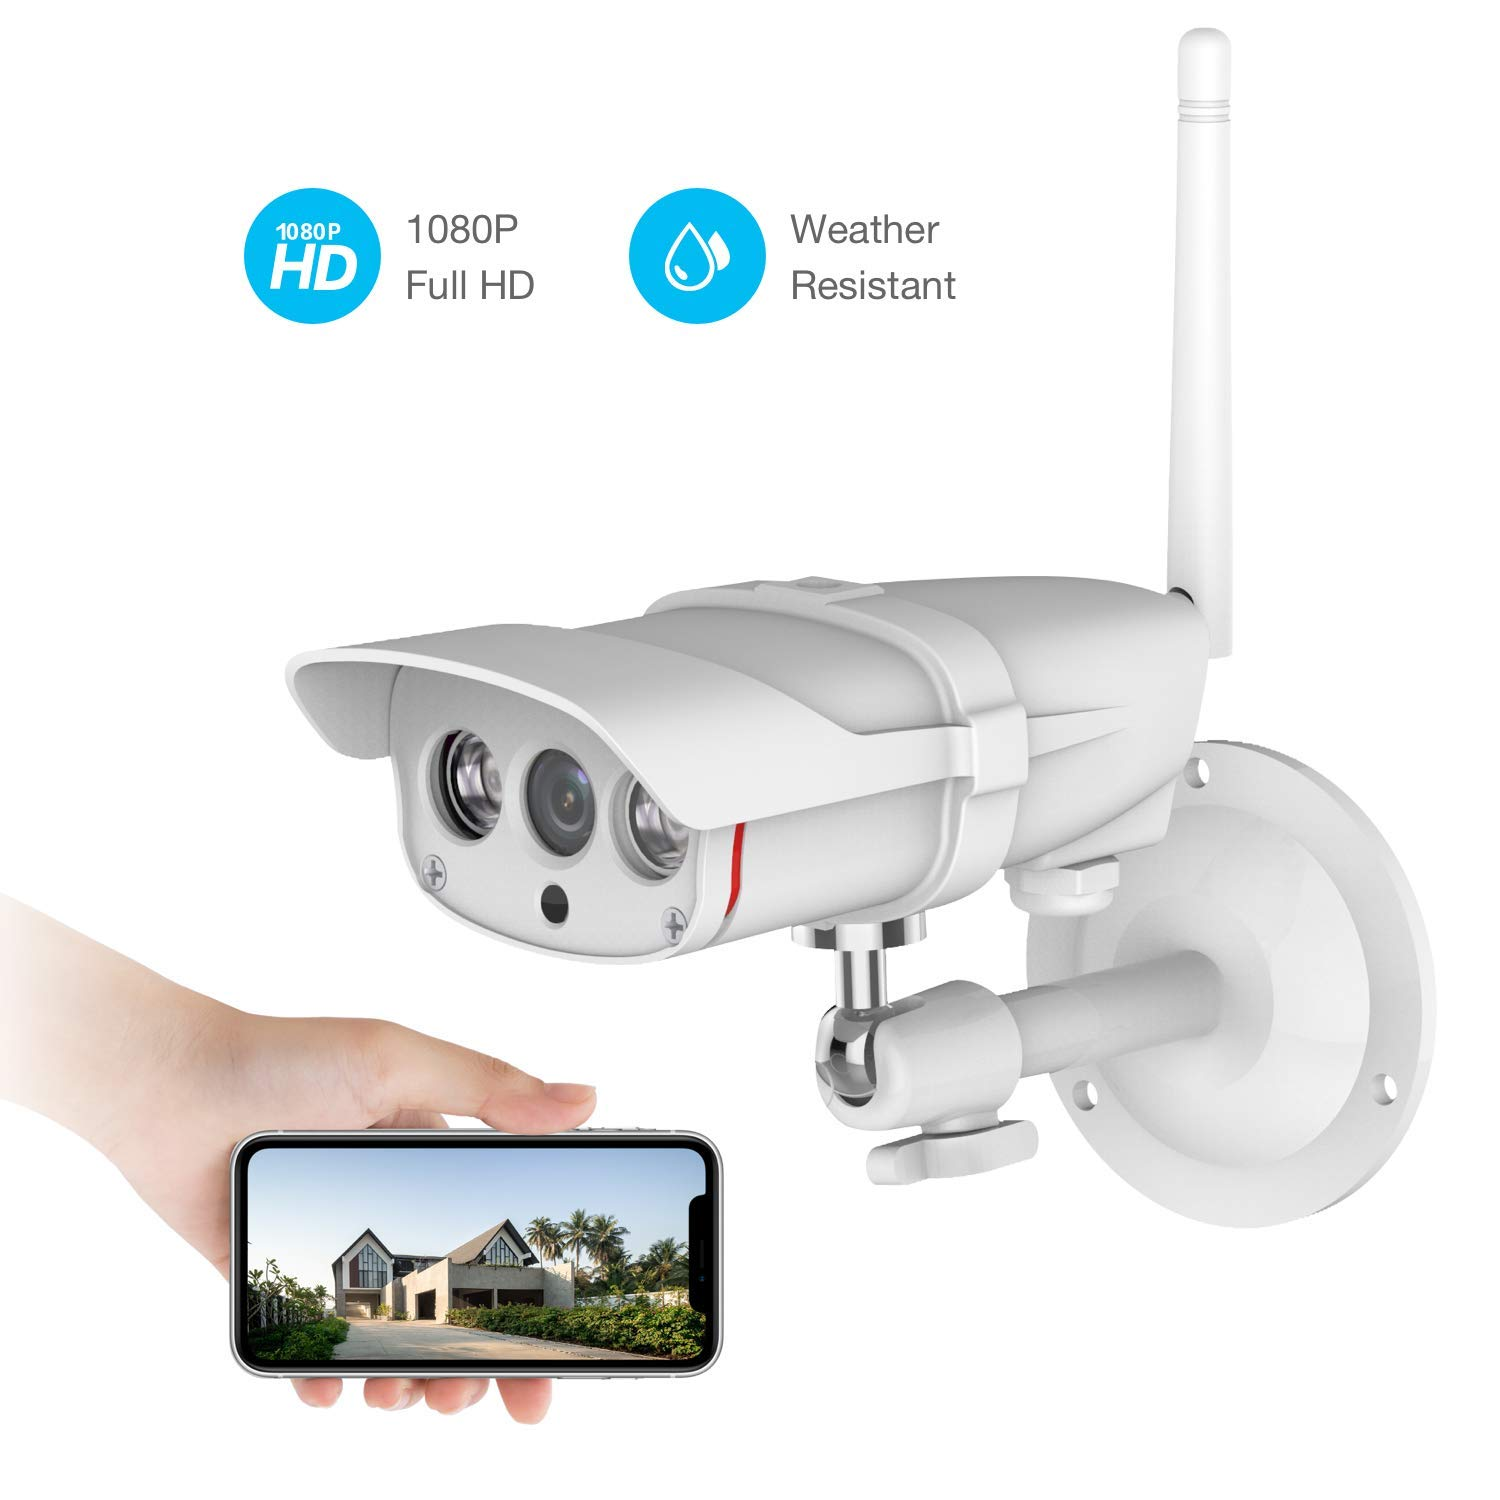 Outdoor Security Camera, Wonbo FHD 1080P Wireless IP Camera 2.4G WIFI Camera with IP67 Waterproof IR Night Vision Motion Detection Home Security Surveillance Camera System, iOS Android